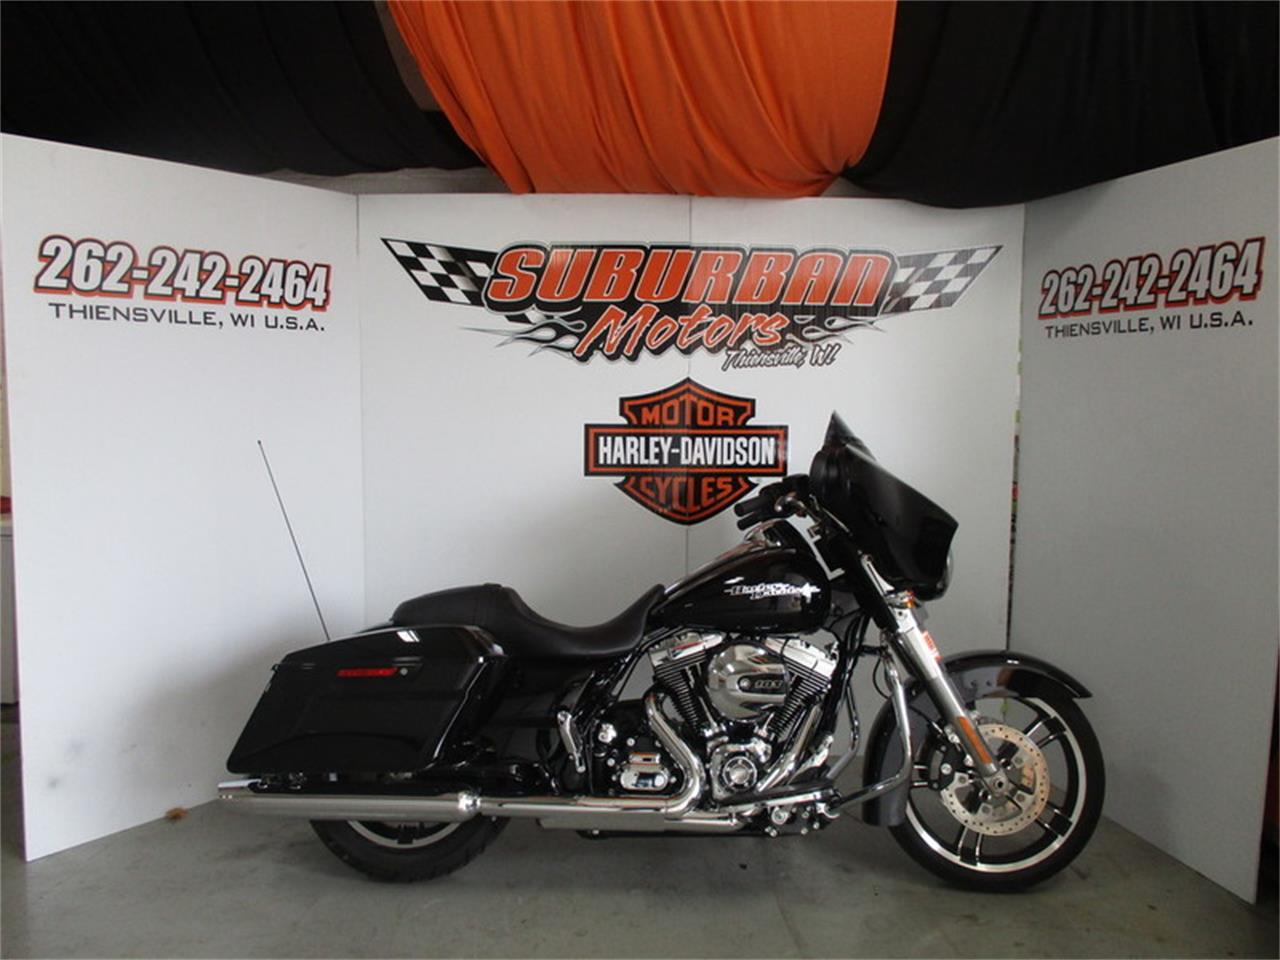 Large Picture of 2016 Harley-Davidson® FLHX - Street Glide® located in Wisconsin - $18,943.00 Offered by Suburban Motors, Inc. - M9CC